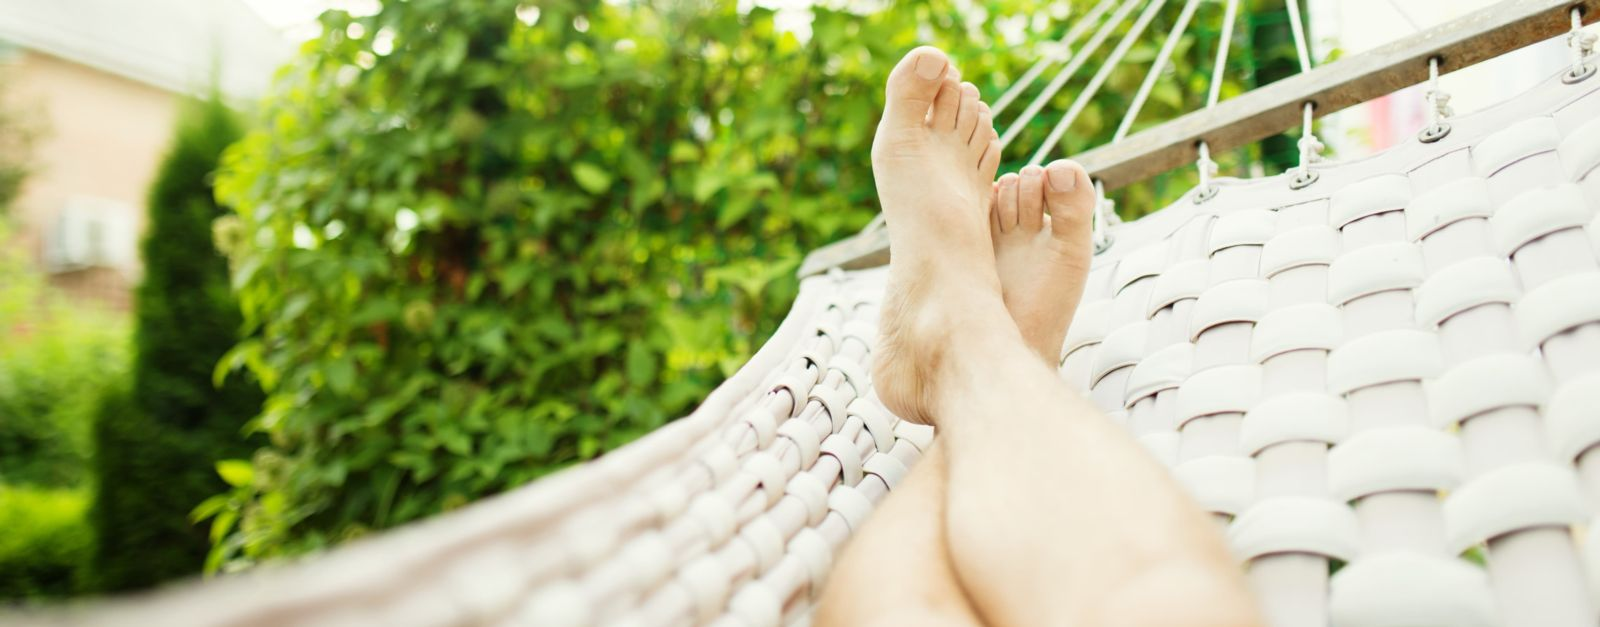 Downtime outdoors, in the sunshine, is one of the best ways to combat holiday stress!